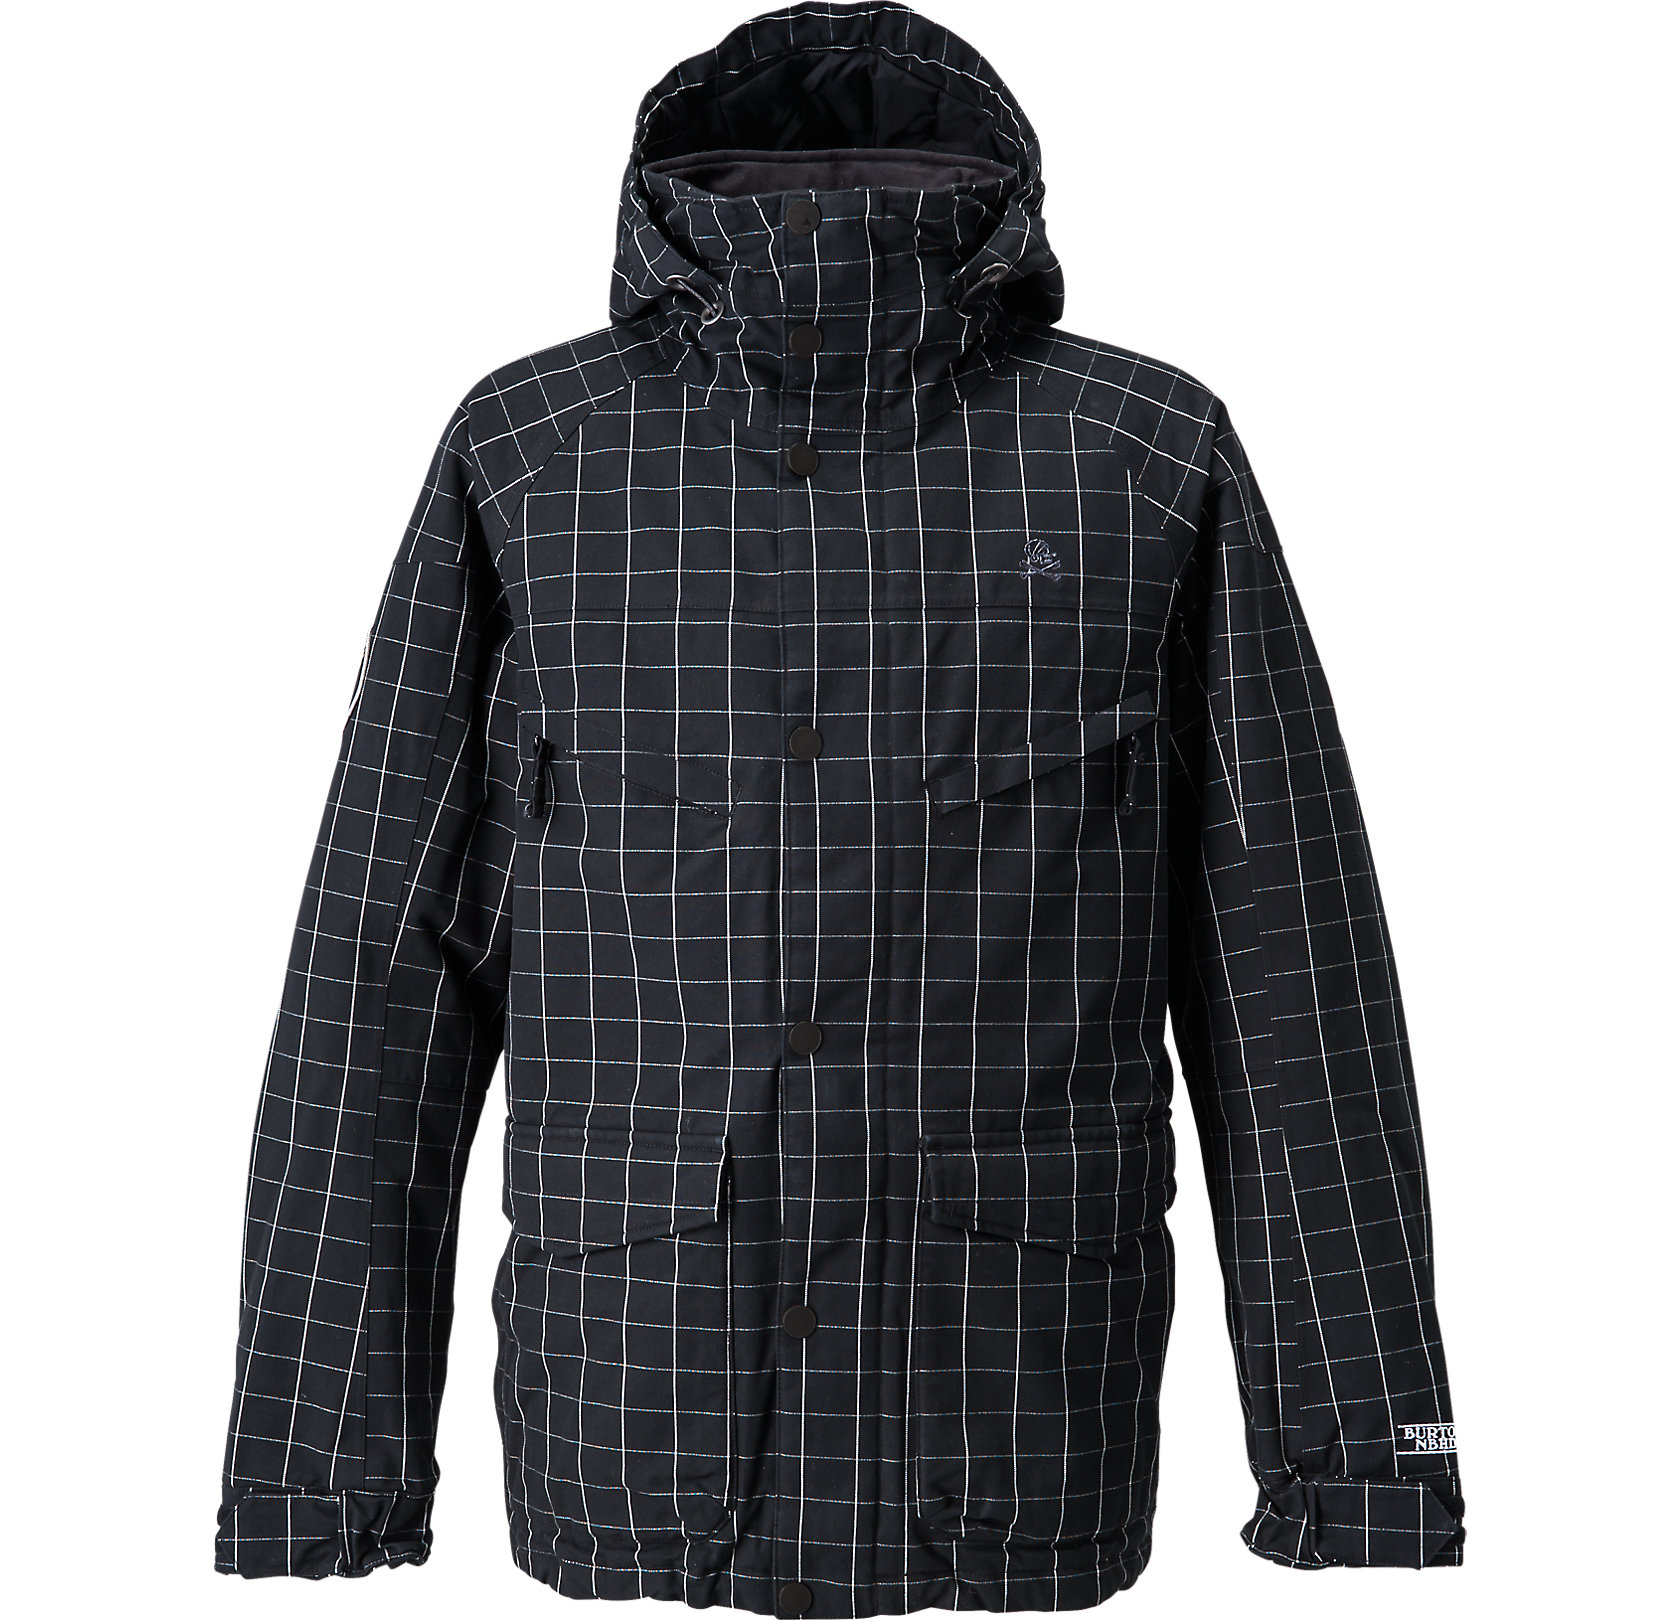 BURTON x NEIGHBORHOOD Frontier Jacket, $910